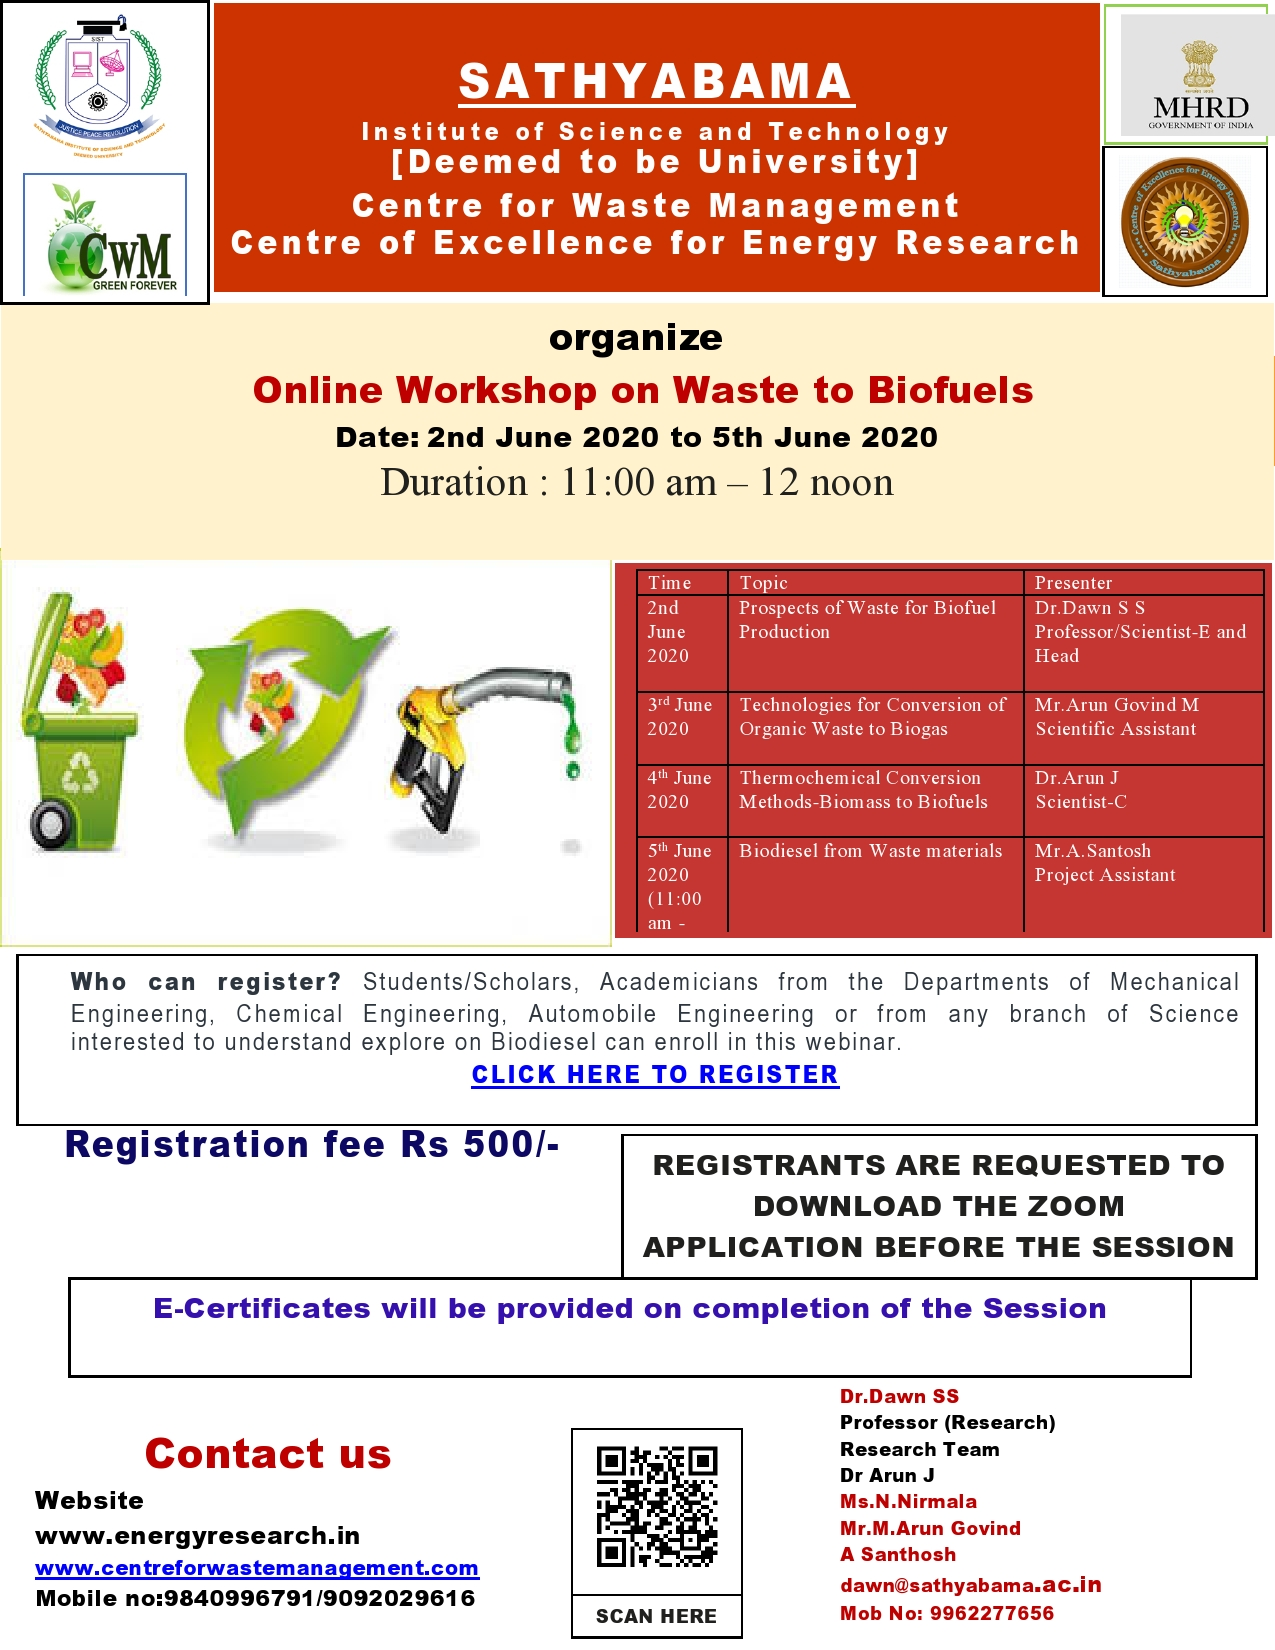 Online Workshop on Waste to Biofuels 2020